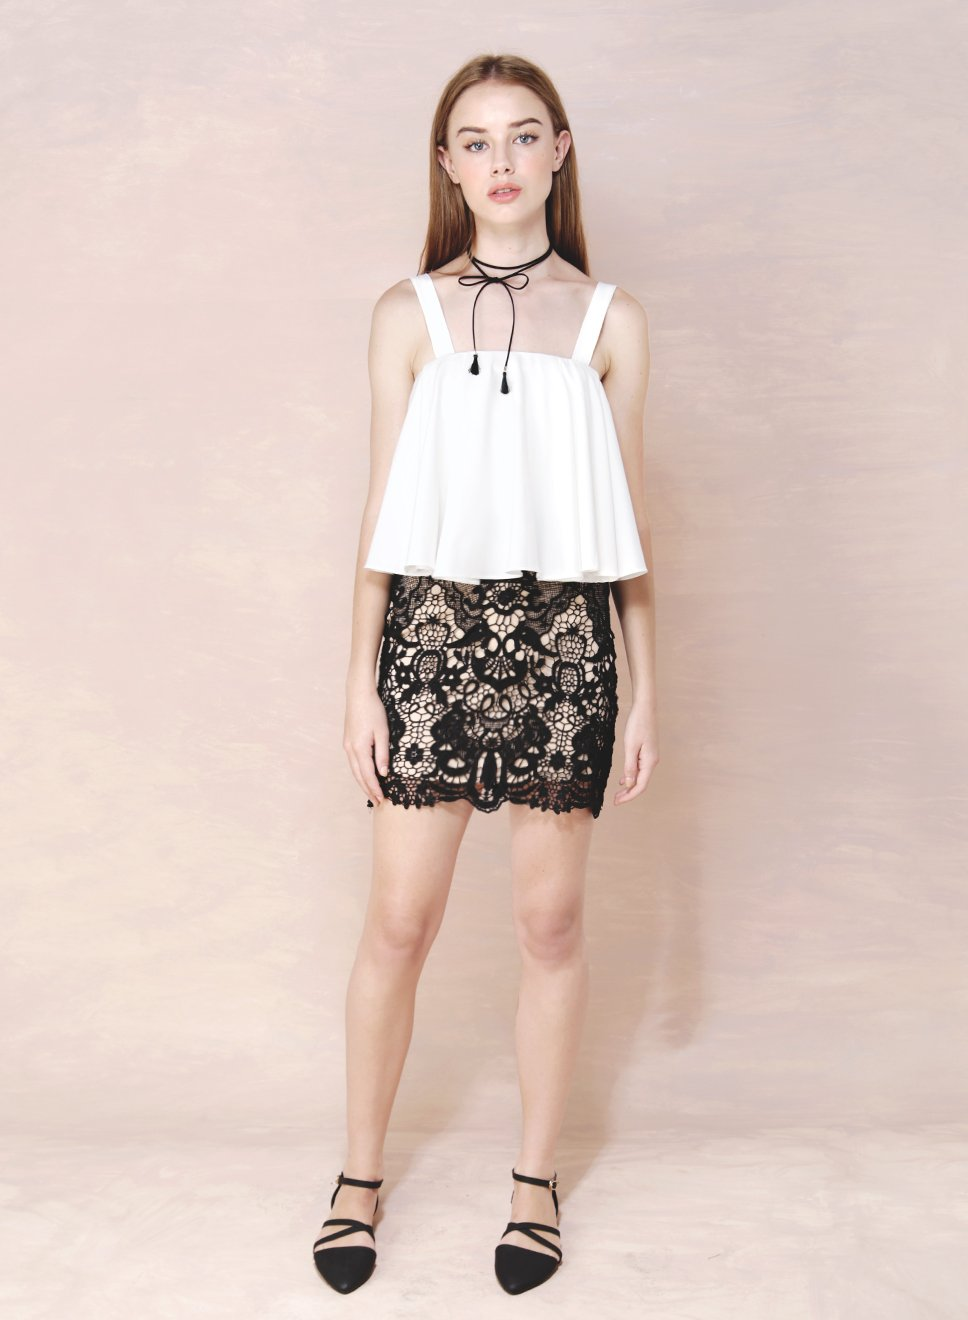 LUCID Crochet Lace Fitted Skirt (Black) at $ 20.50 only sold at And Well Dressed Online Fashion Store Singapore